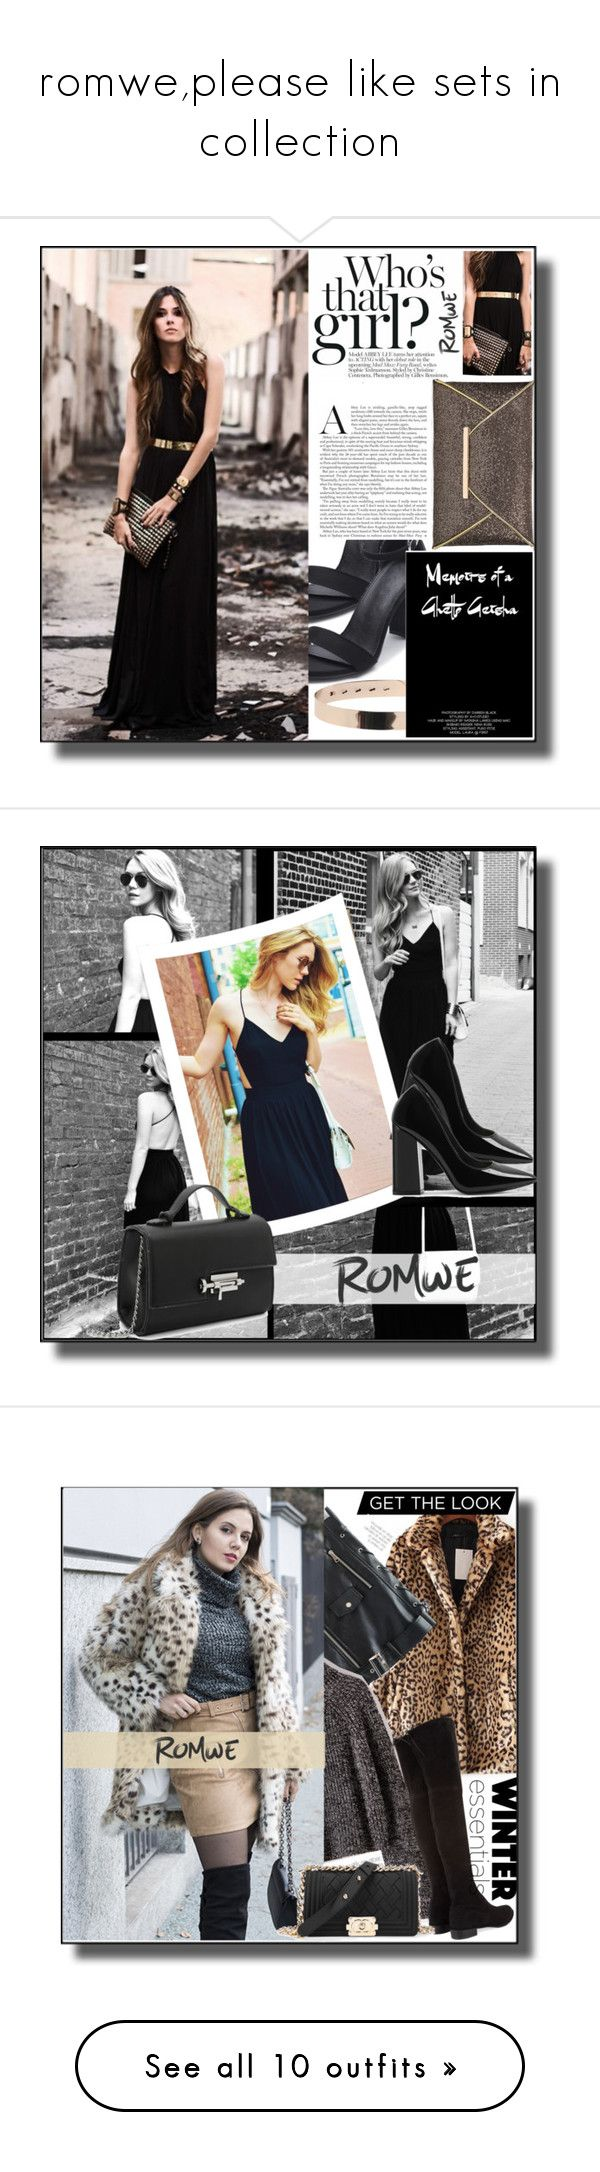 """""""romwe,please like sets in collection"""" by smajicelma ❤ liked on Polyvore featuring gift, sale, Stuart Weitzman, AYTM, Chanel, Pier 1 Imports and H&M"""